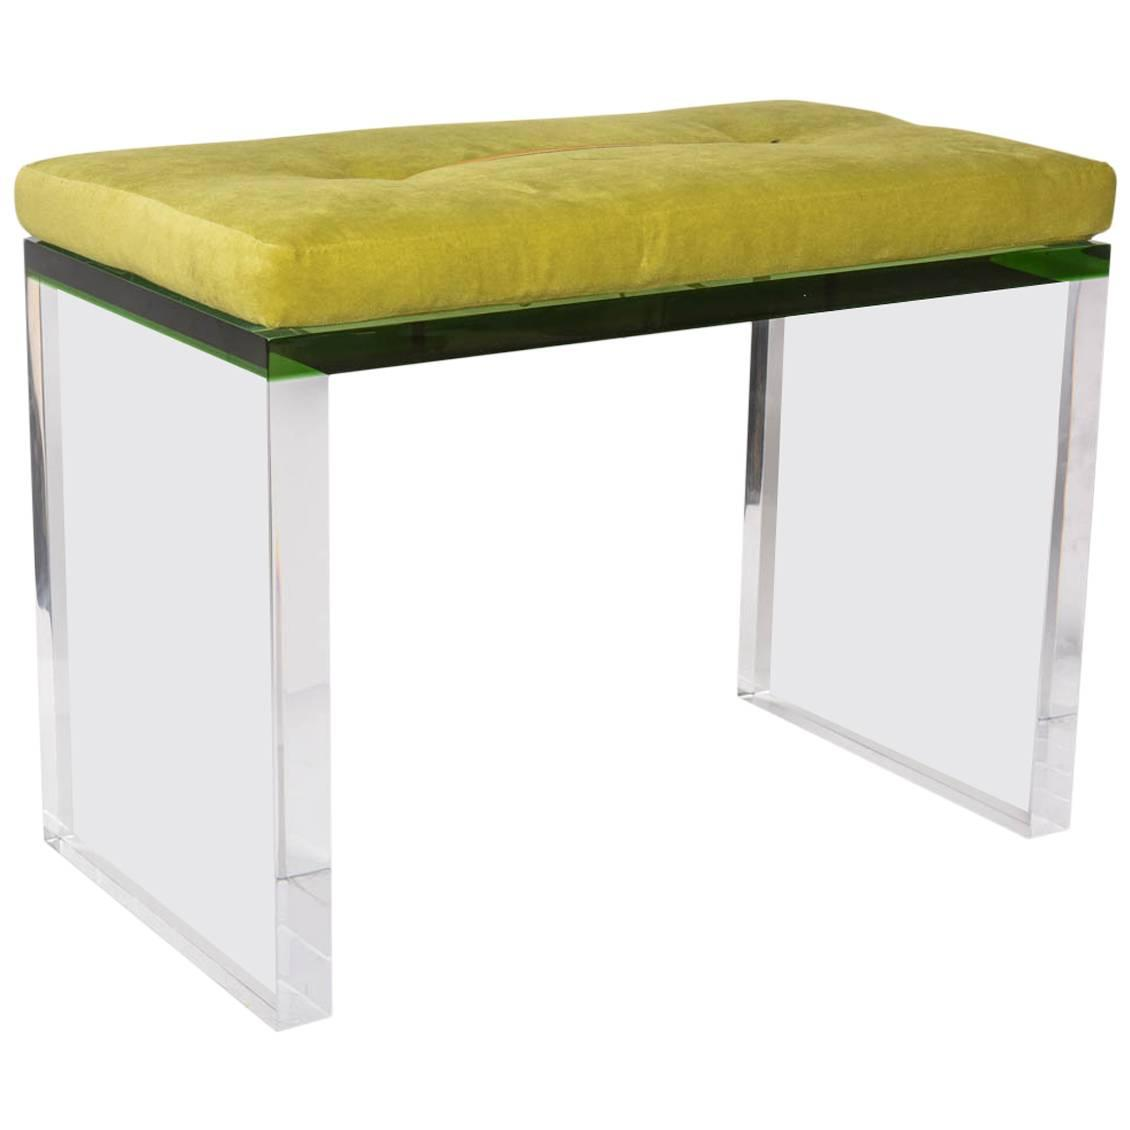 Modern Green And Clear Lucite Bench For Sale At 1stdibs